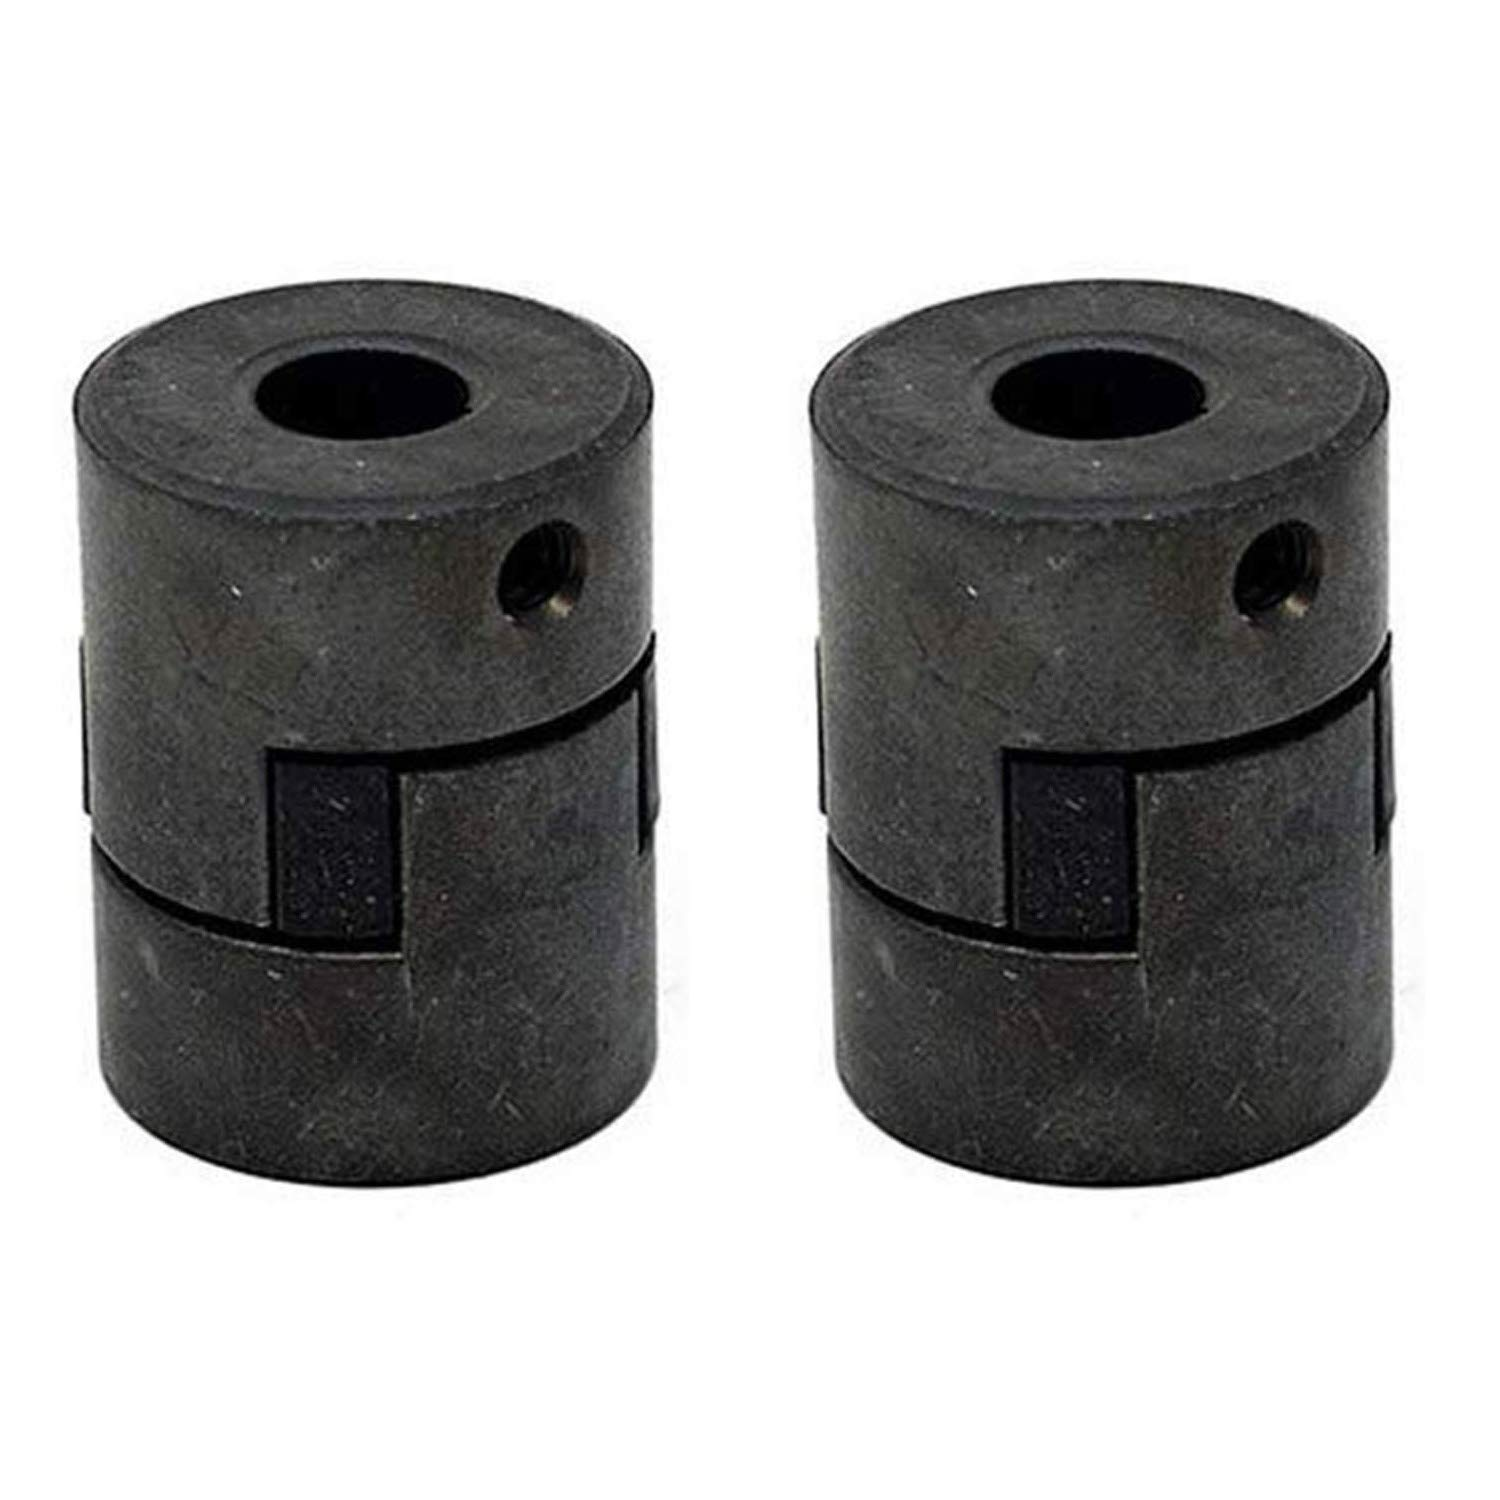 PLXparts Pump Drive Coupling Vacuum Pump Replacement for Bullet Supervac and Yellowjacket Pumps-2 Pack